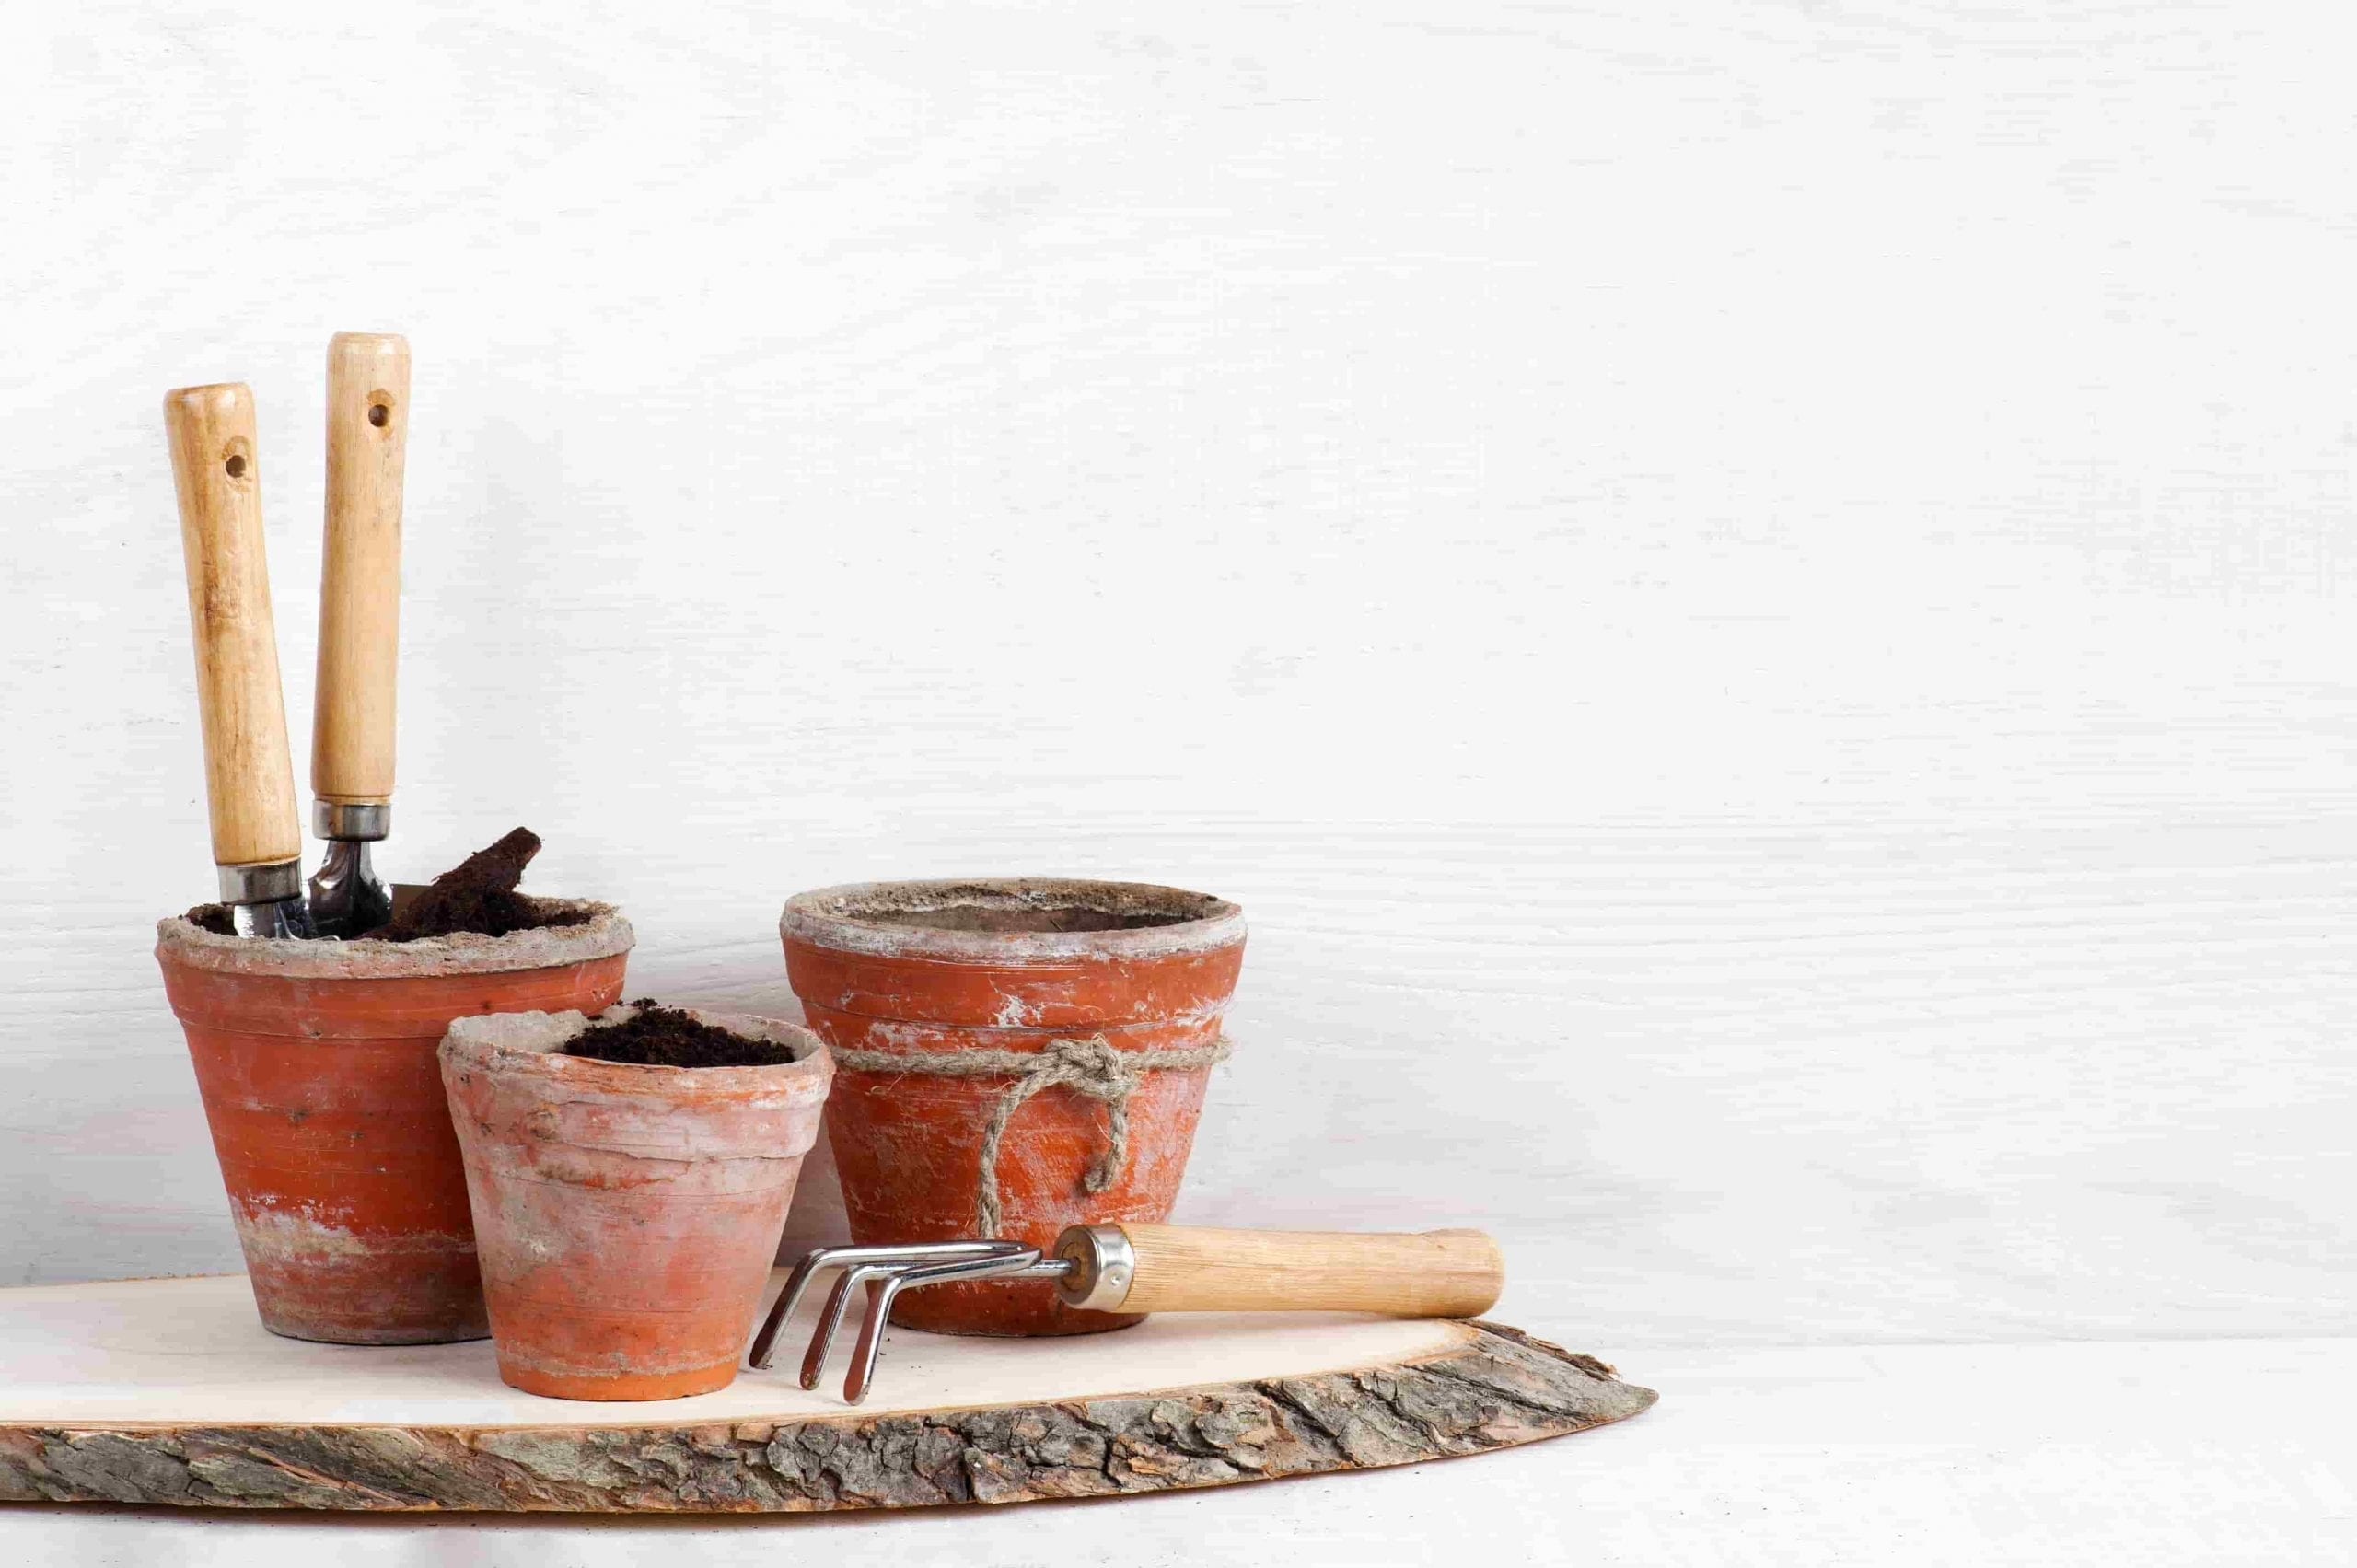 gifts for gardeners garden tools and pots